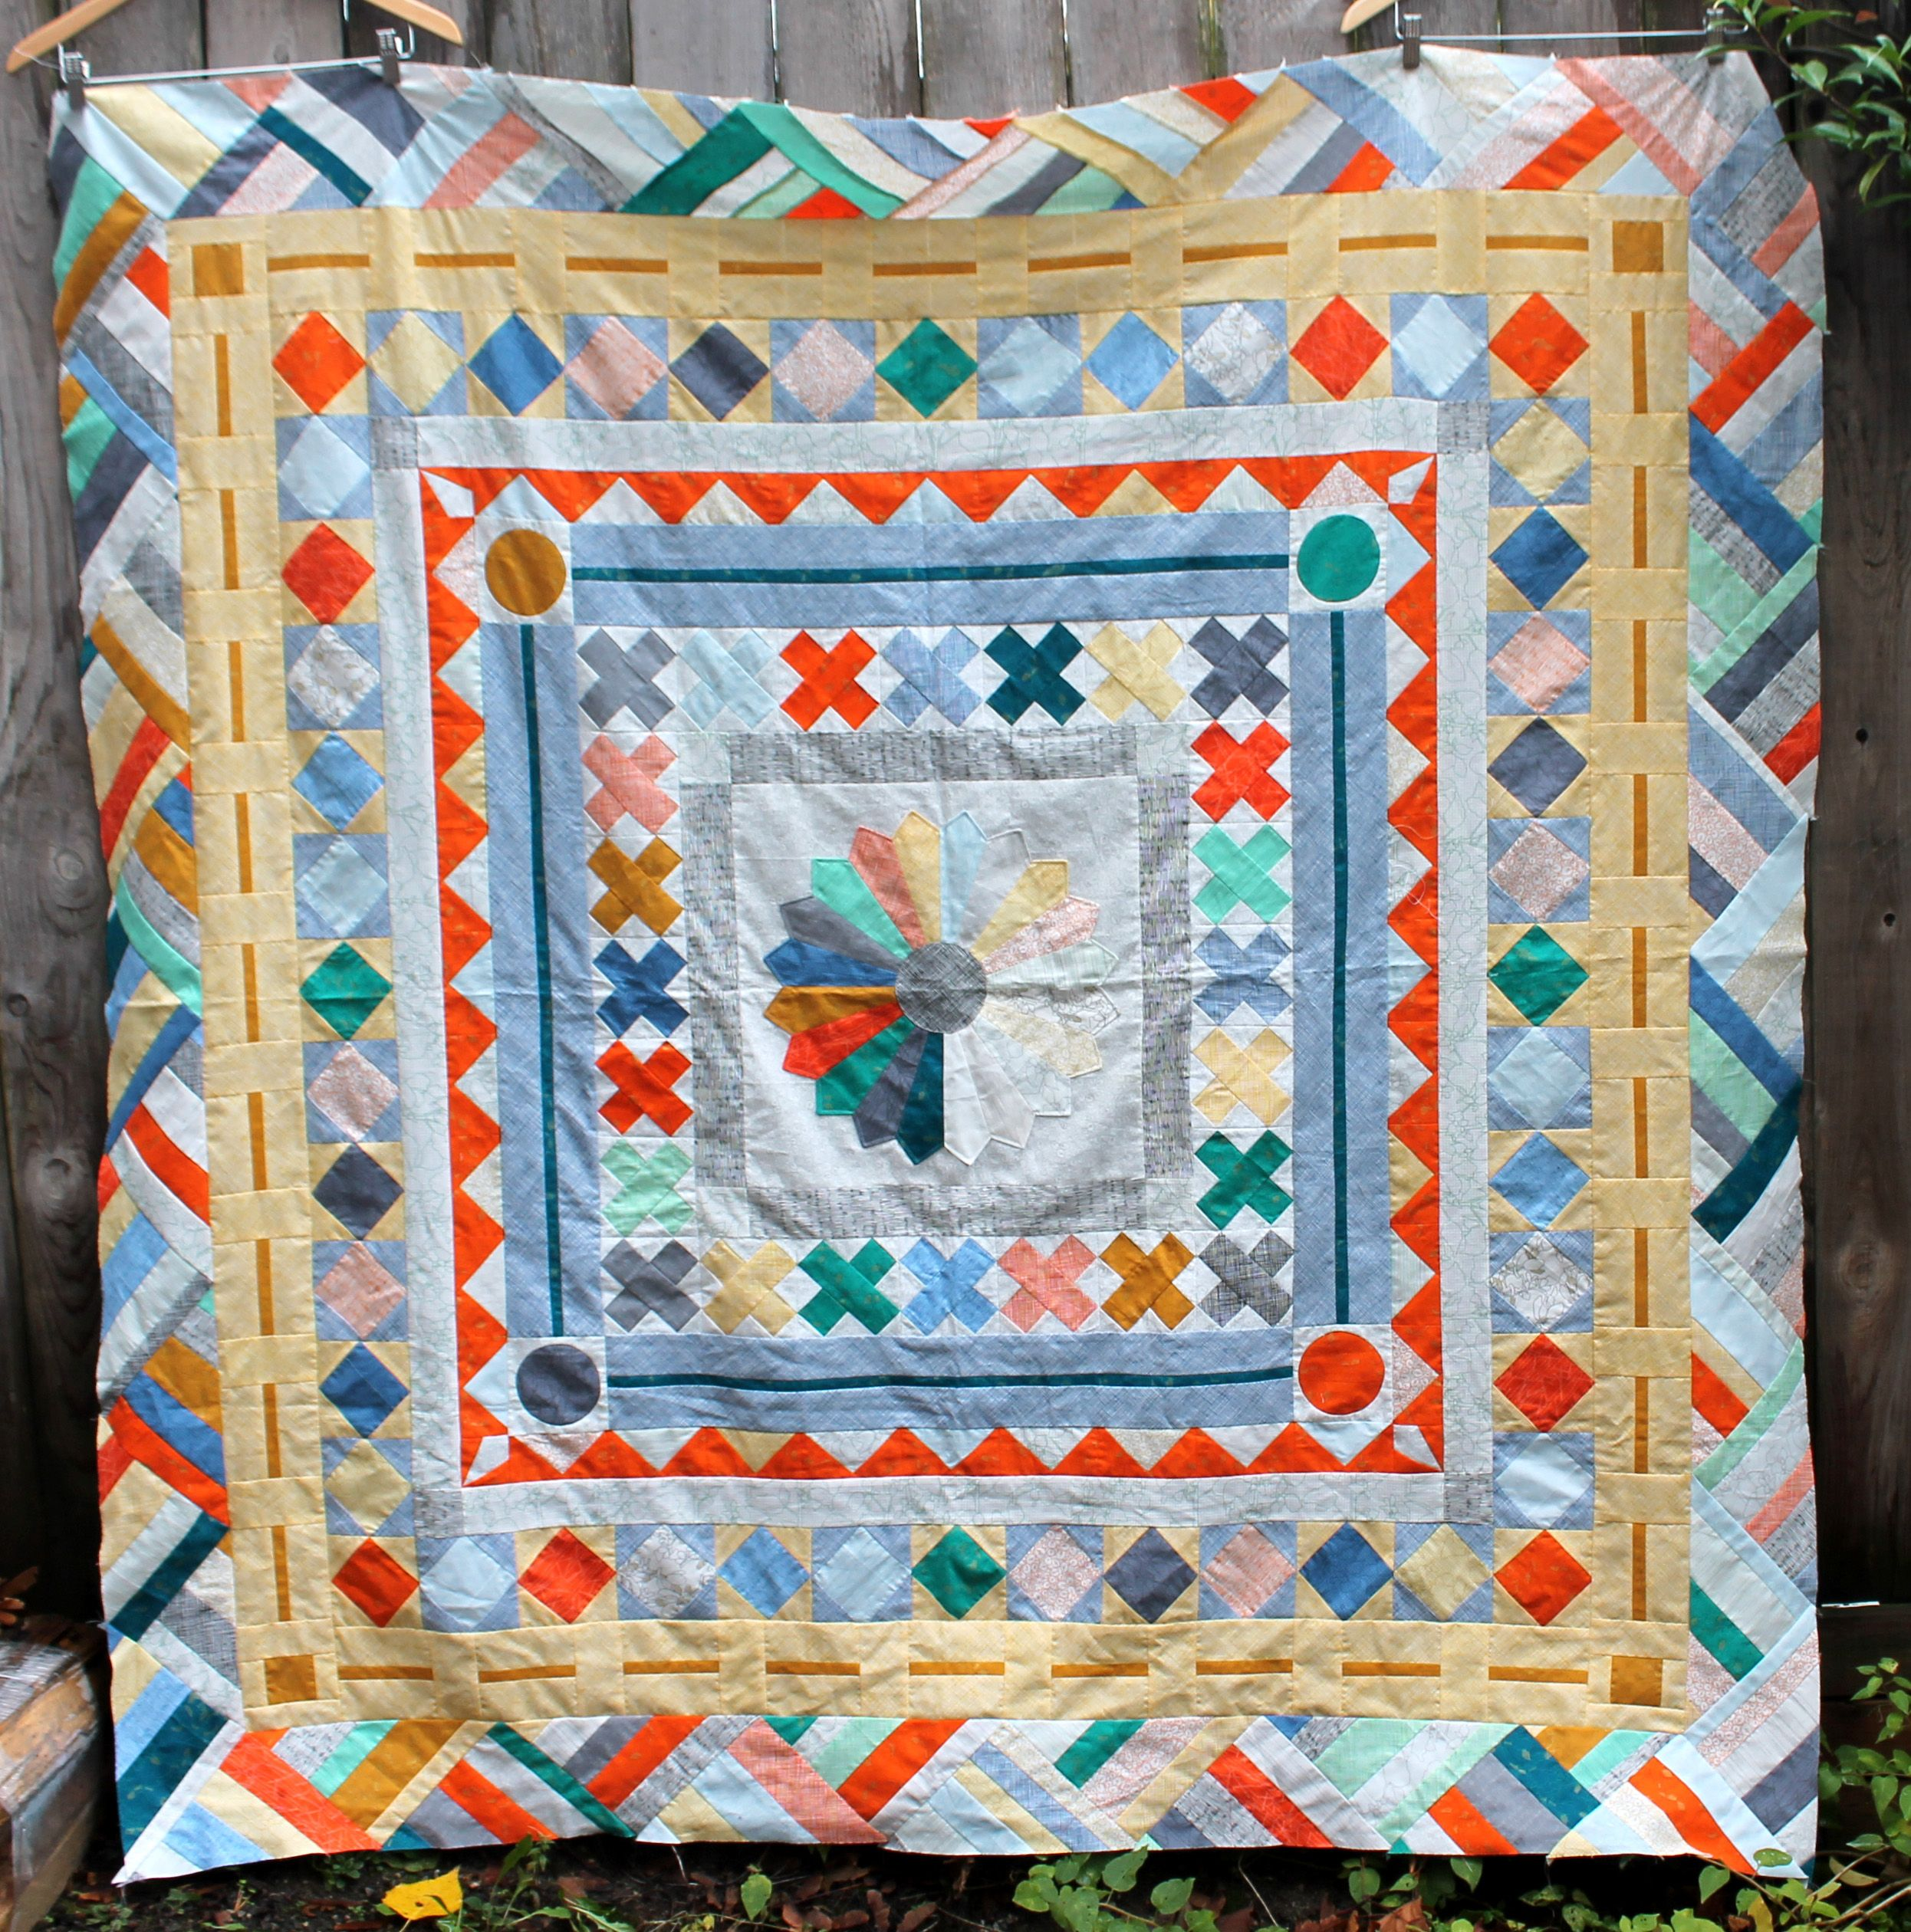 studio medallion karen little tag birdie quilting quilt mundt